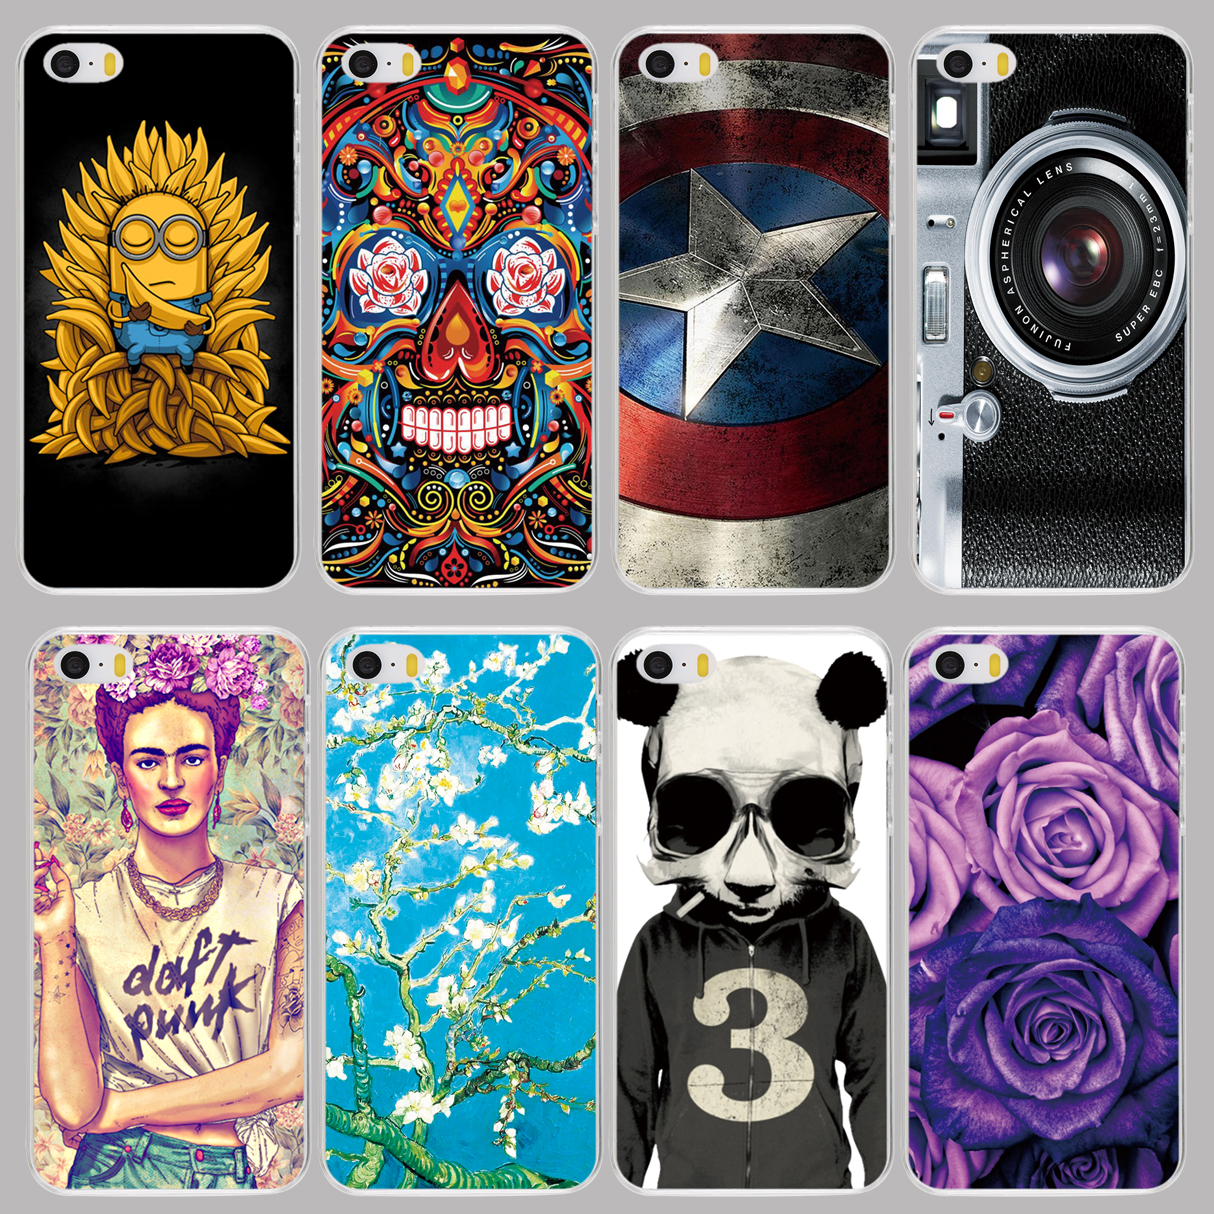 cell phone Cover Case for huawei honor 3C 4A 4X 4C 5X 6 7 GR5 Y6 V8 8 panda flower skull camera sheild cat tiger sexy girl(China (Mainland))